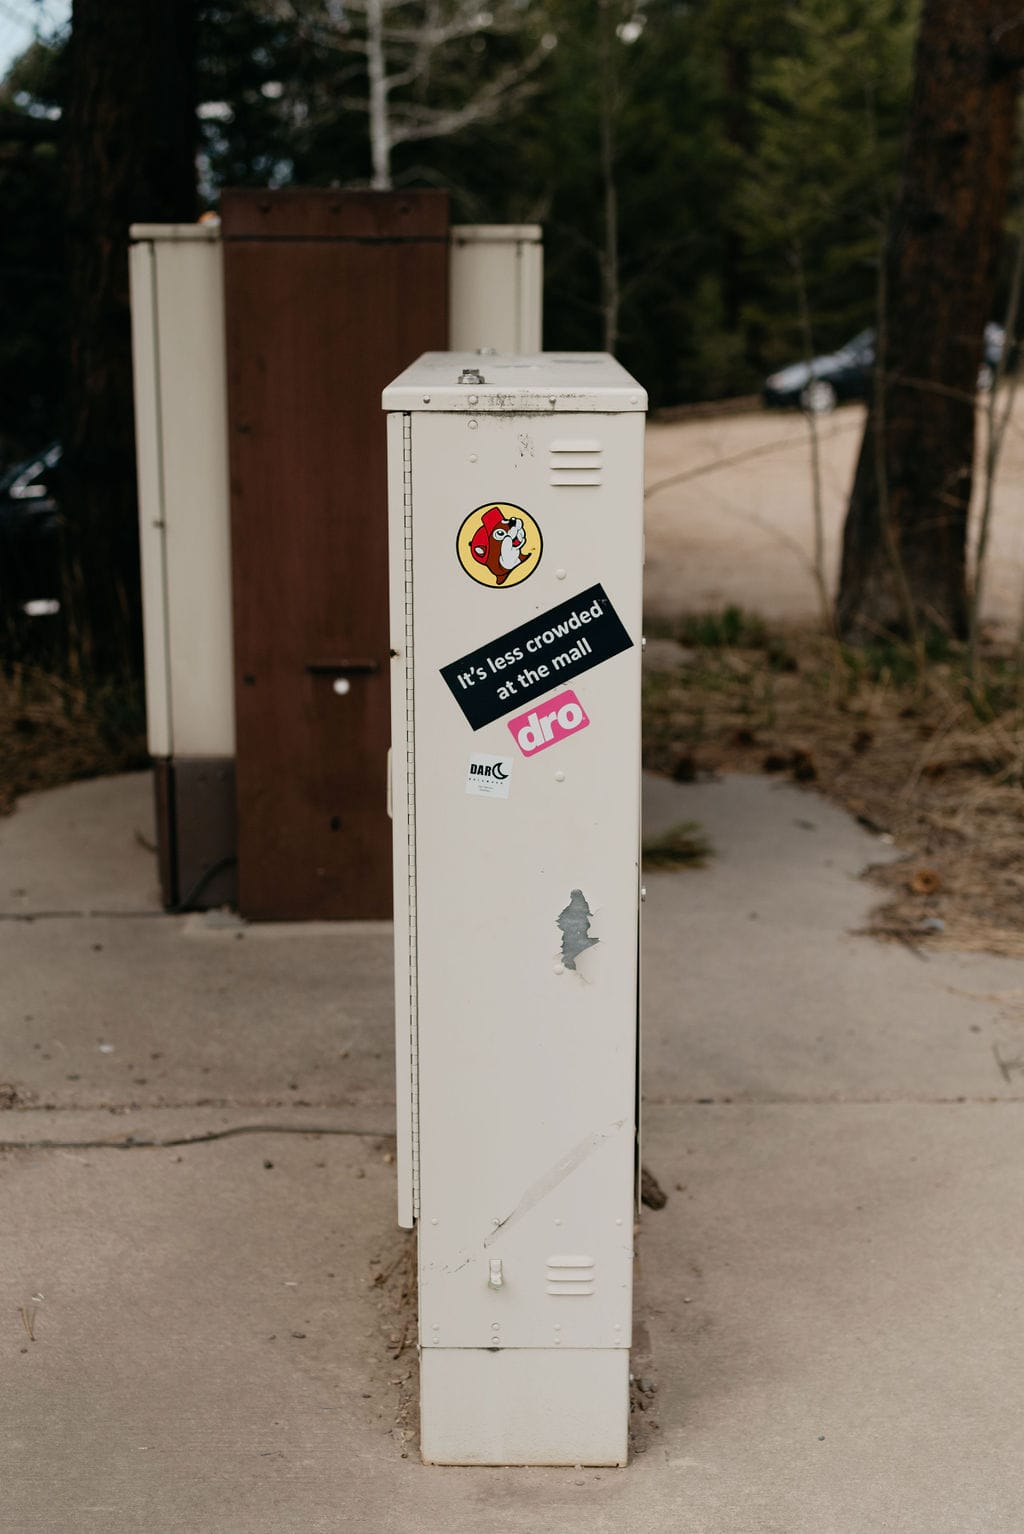 Buccees sticker on hiking trailhead